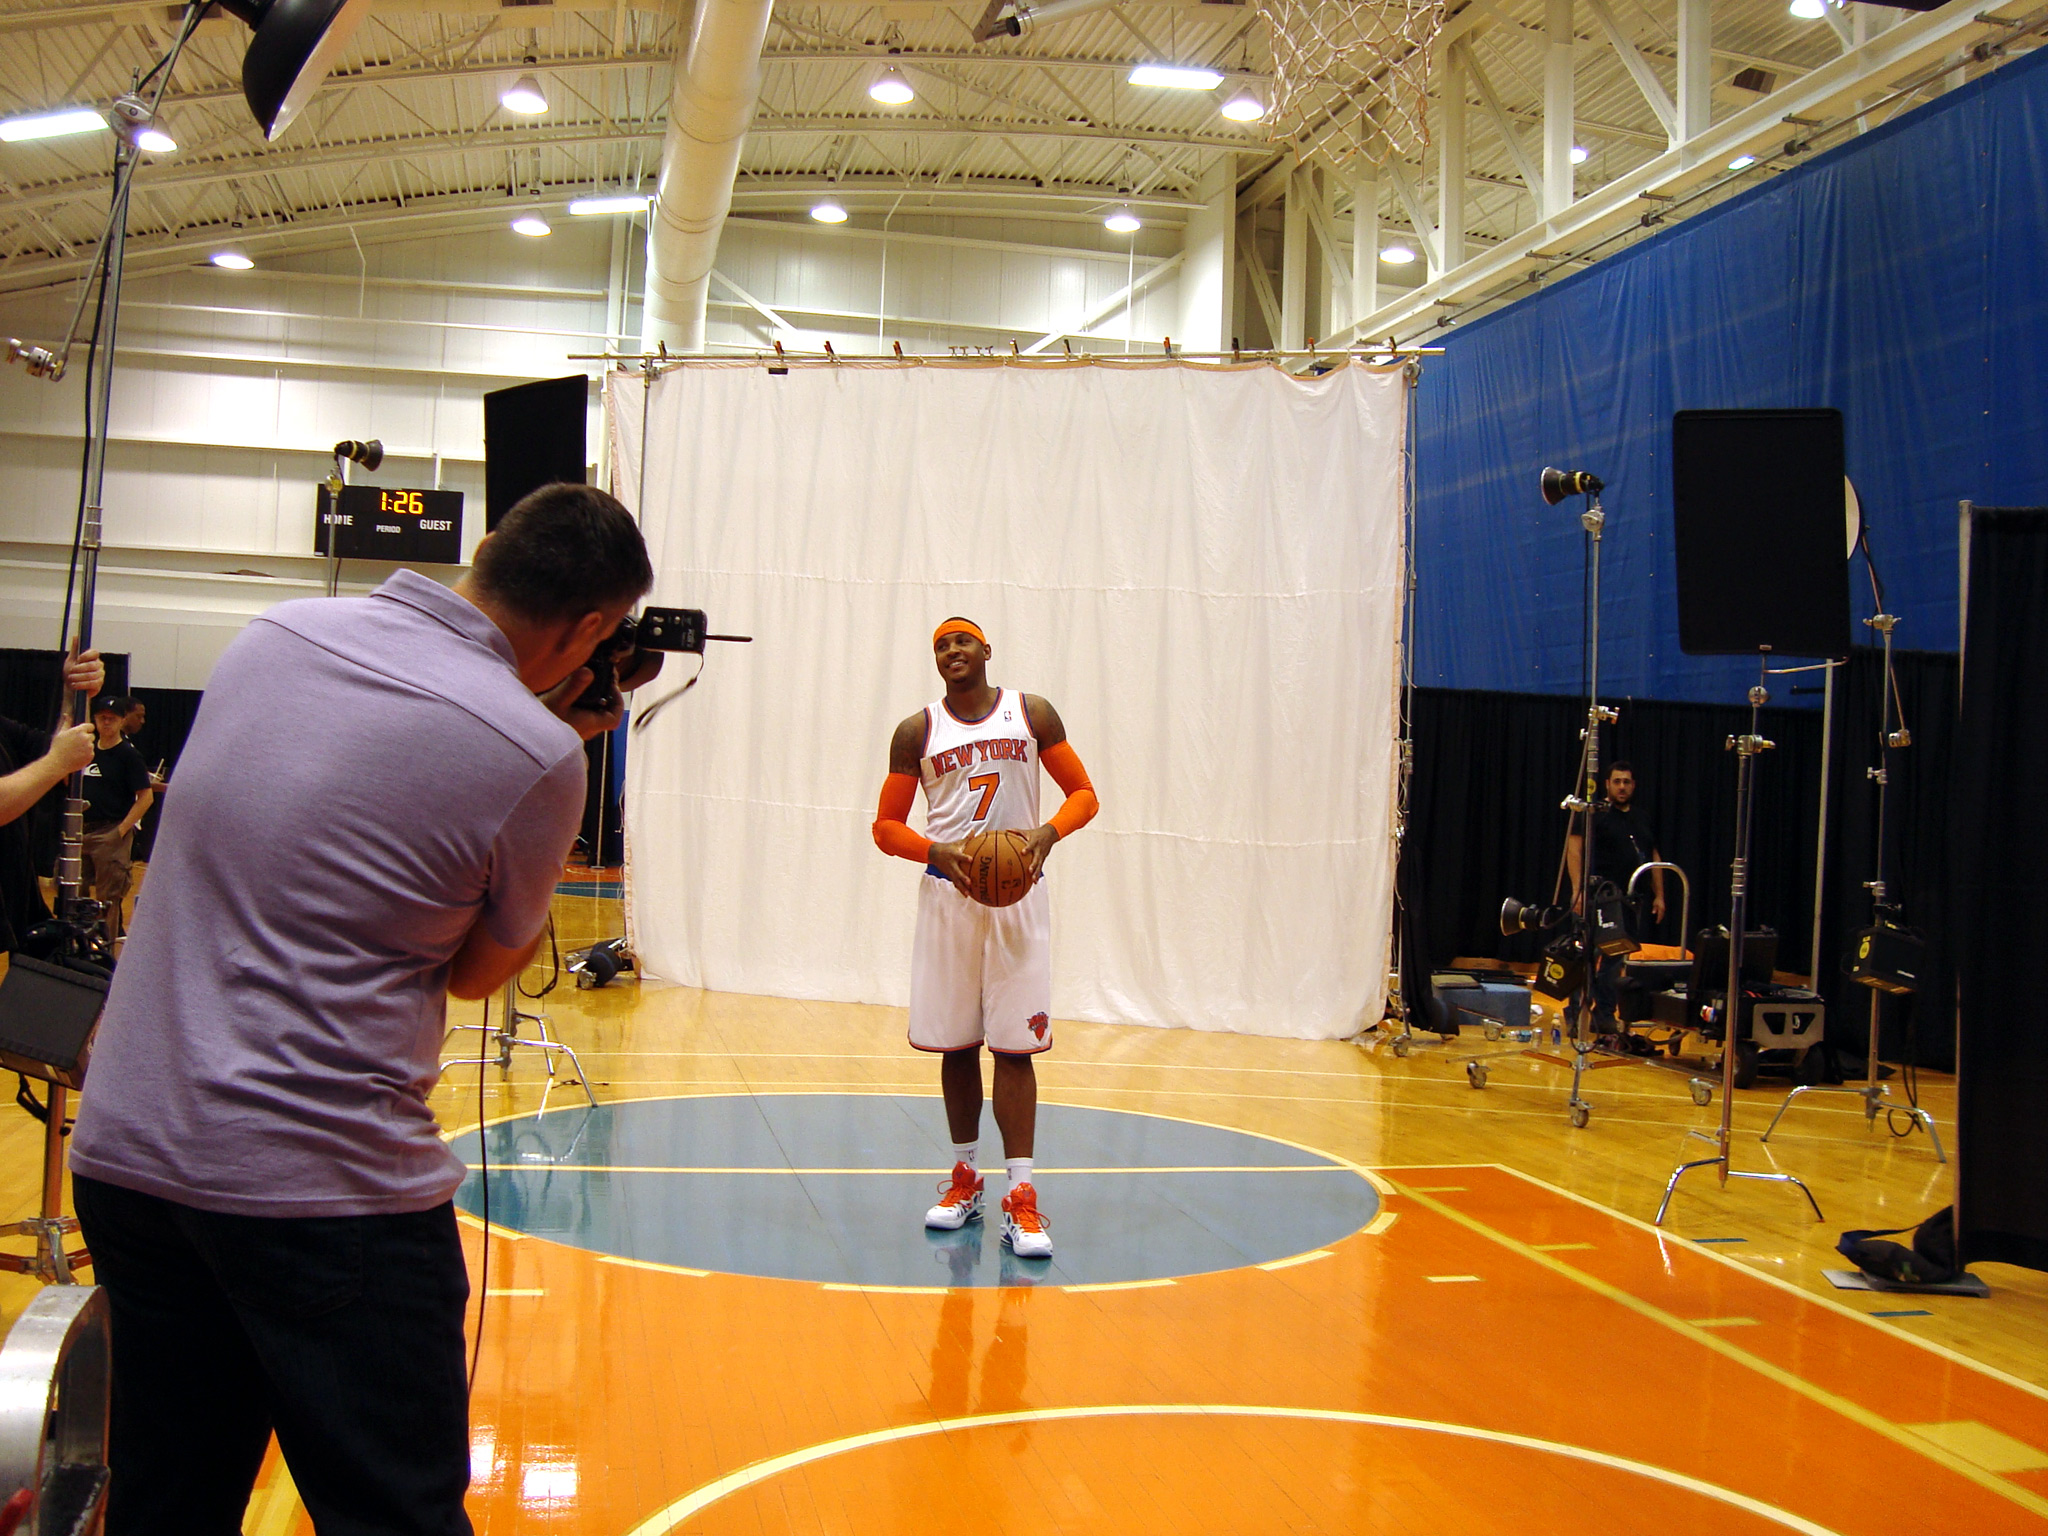 Carmelo Anthony: Behind the Scenes